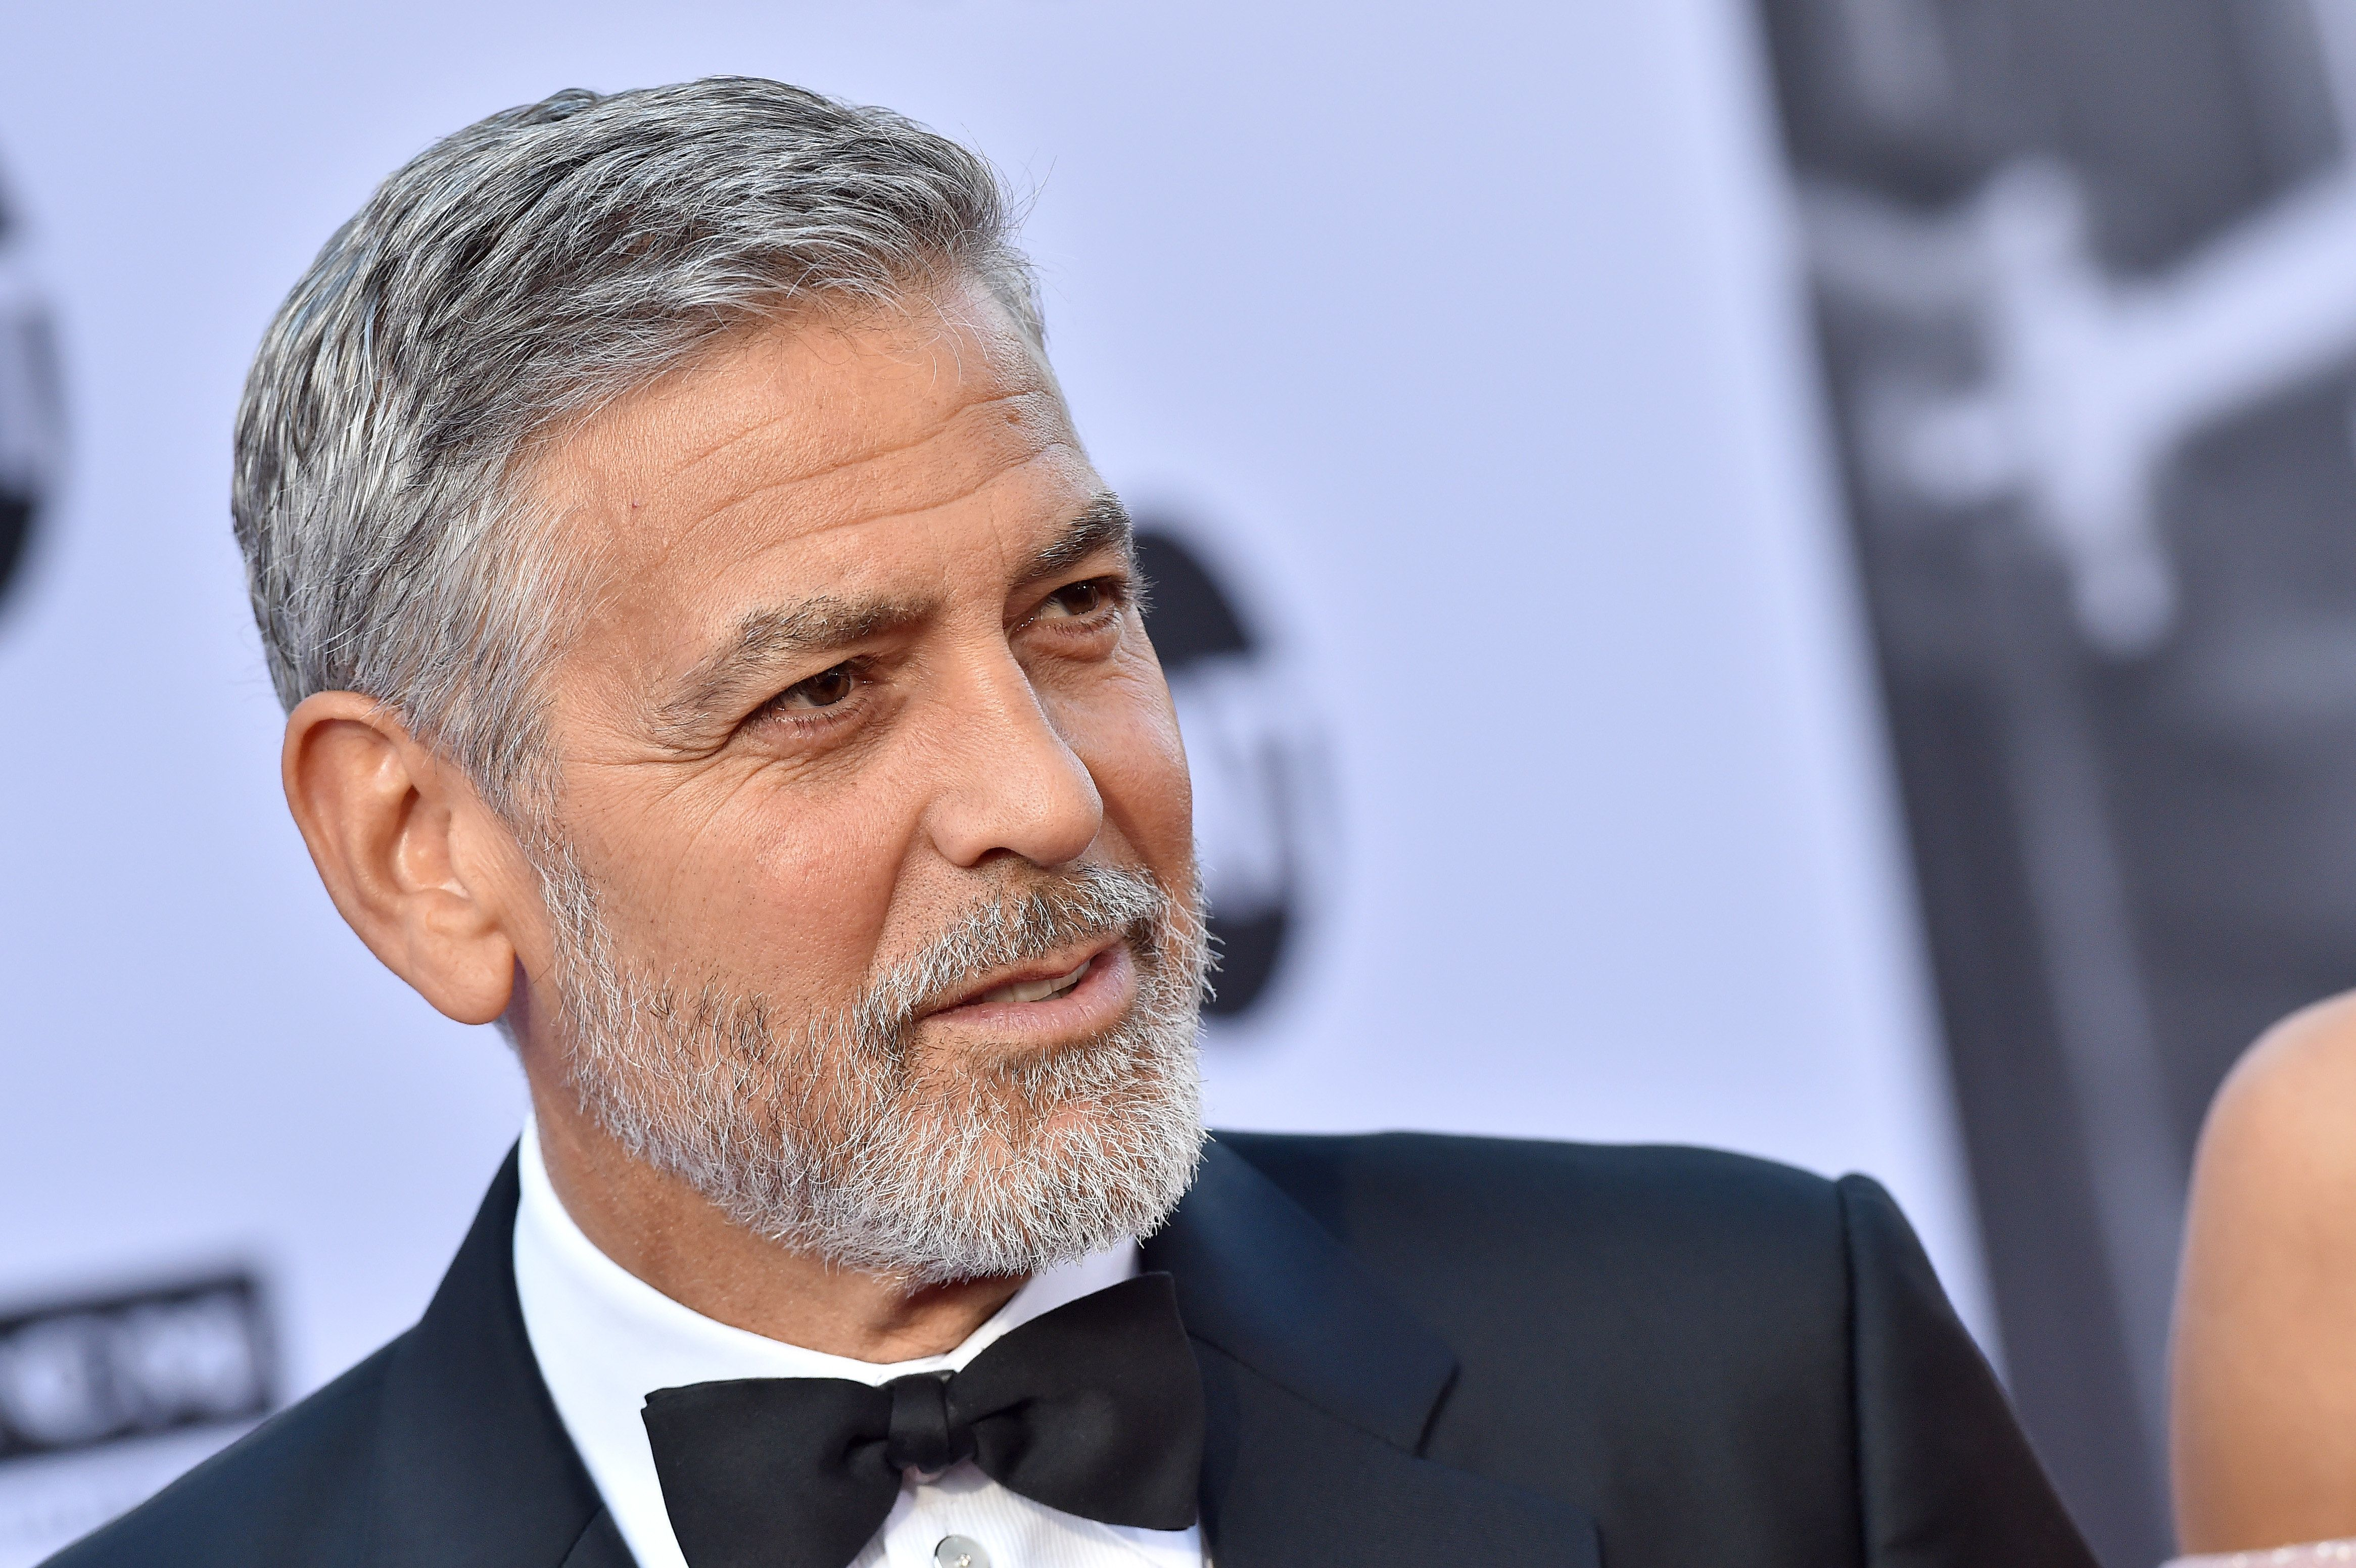 George Clooney Tops Forbes' Highest-Paid Actors List With Almost A Quarter Of A Billion